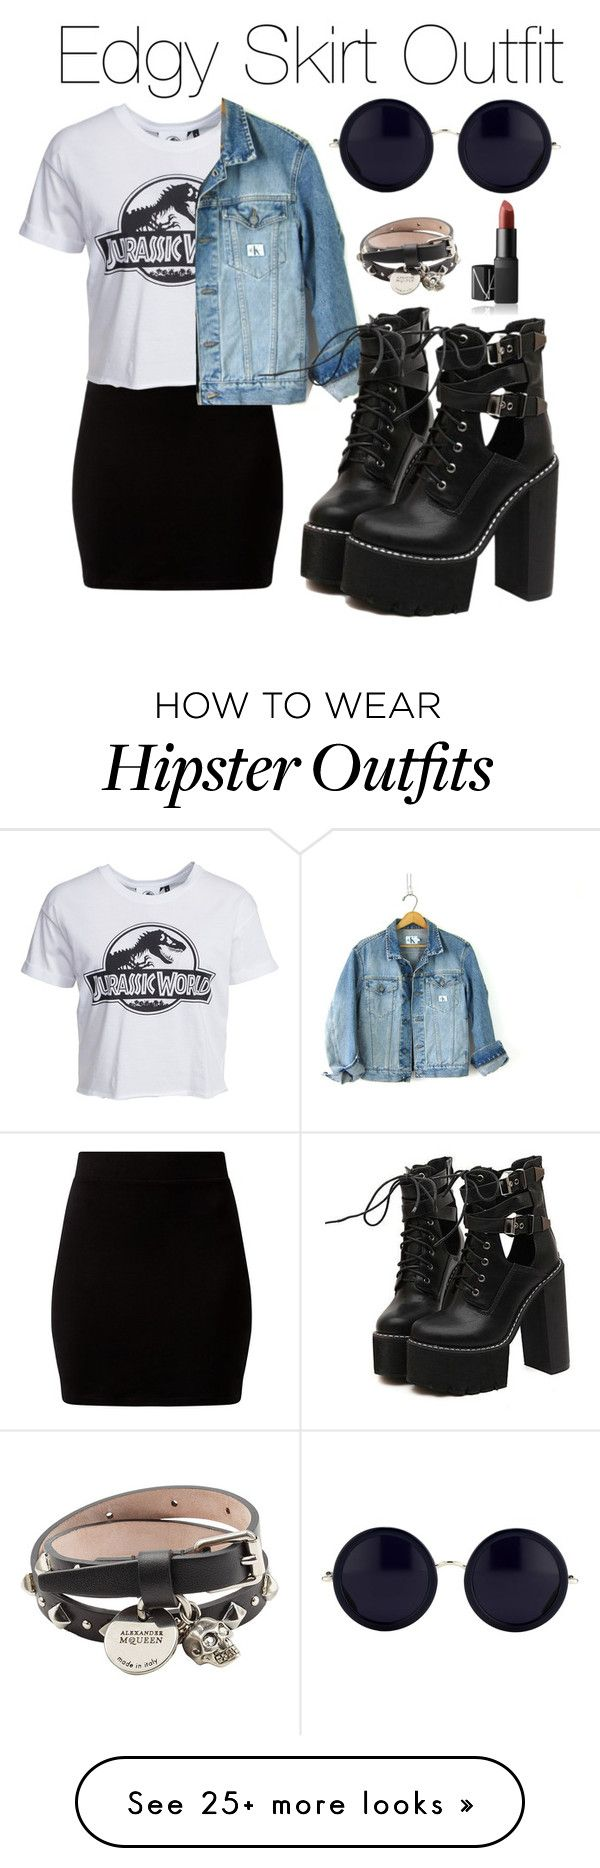 """""""Edgy Skirt Outfit"""" by kimbo20111 on Polyvore featuring ..."""